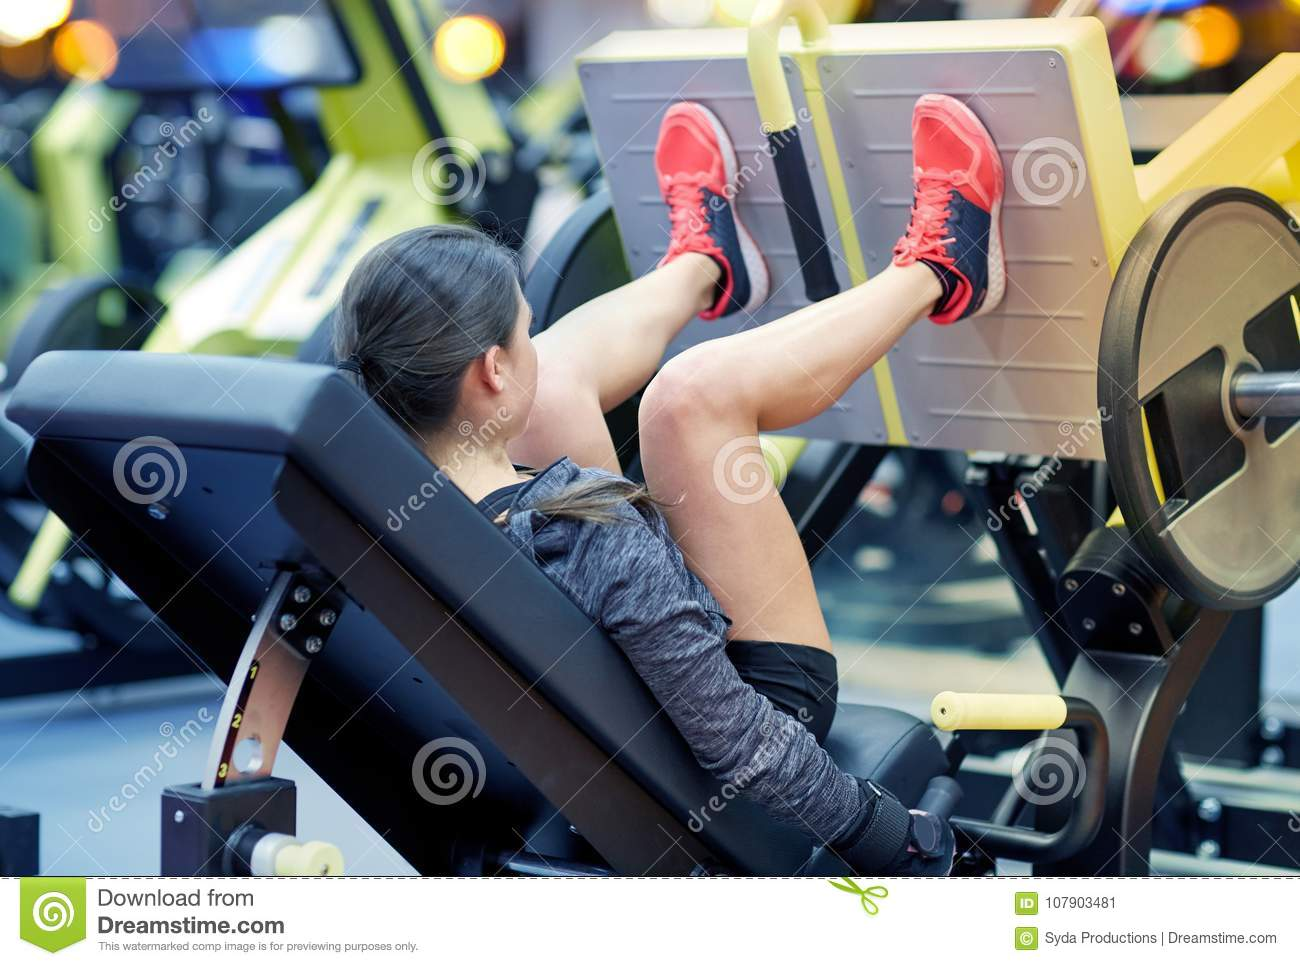 Woman Flexing Muscles On Leg Press Machine In Gym Stock Image